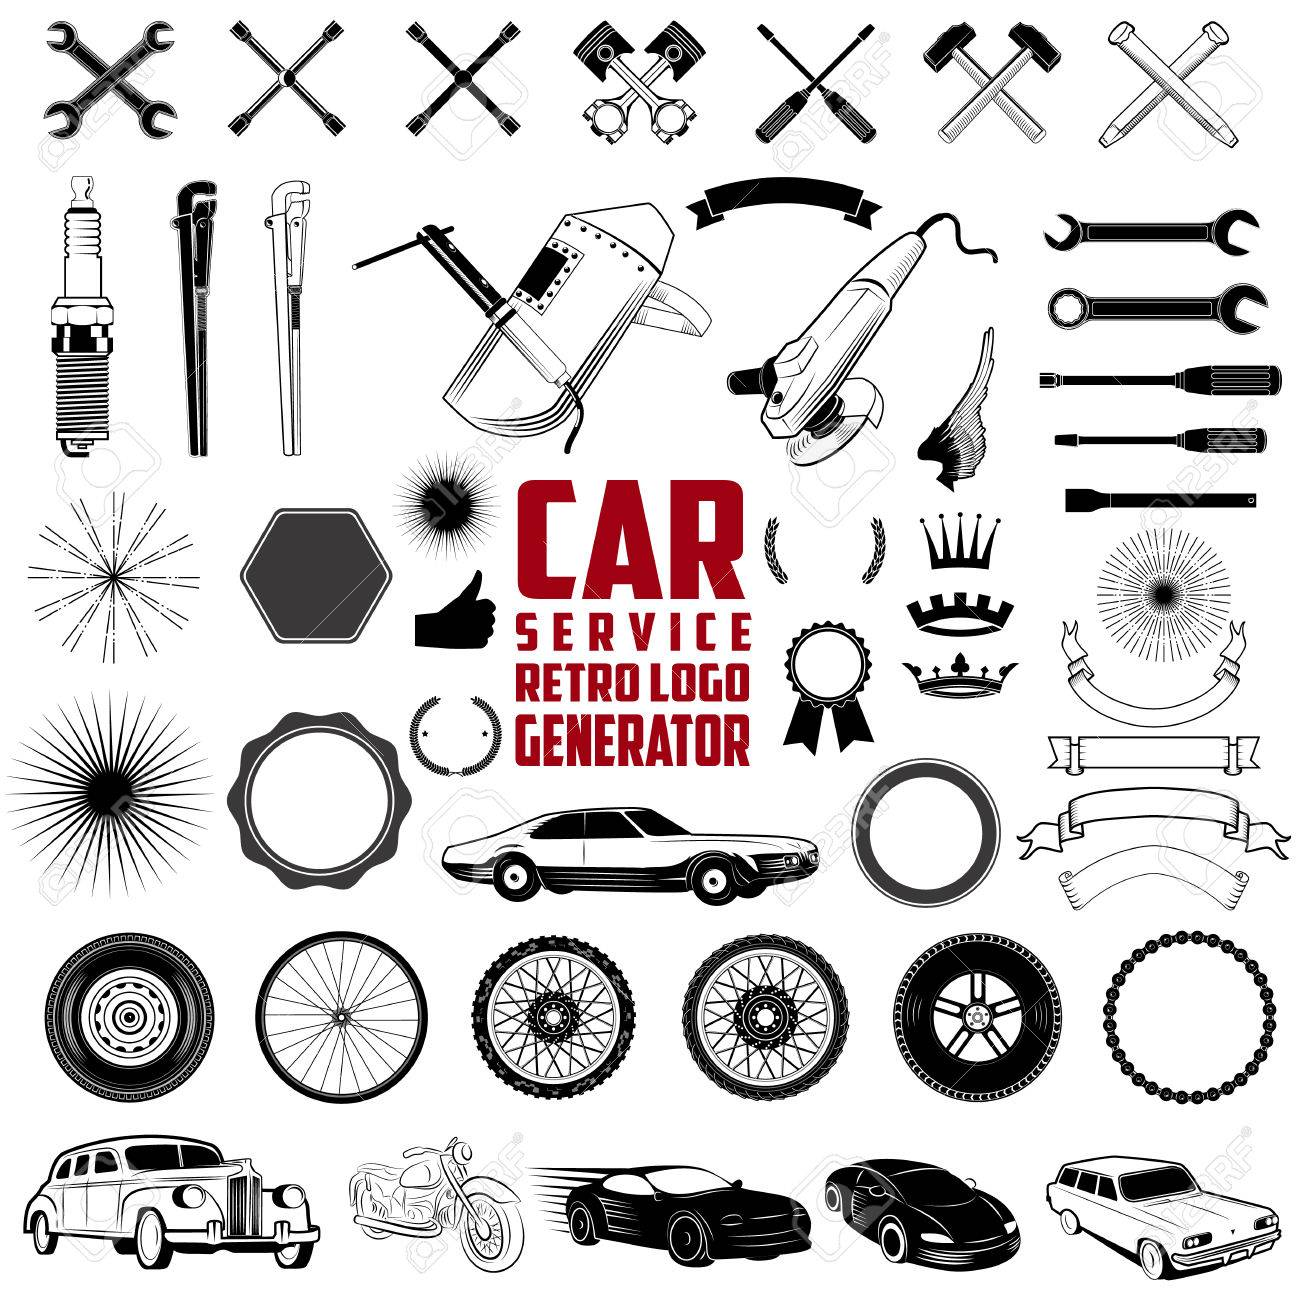 Car Service Retro Logo Generator is set of icons, badges, ribbons